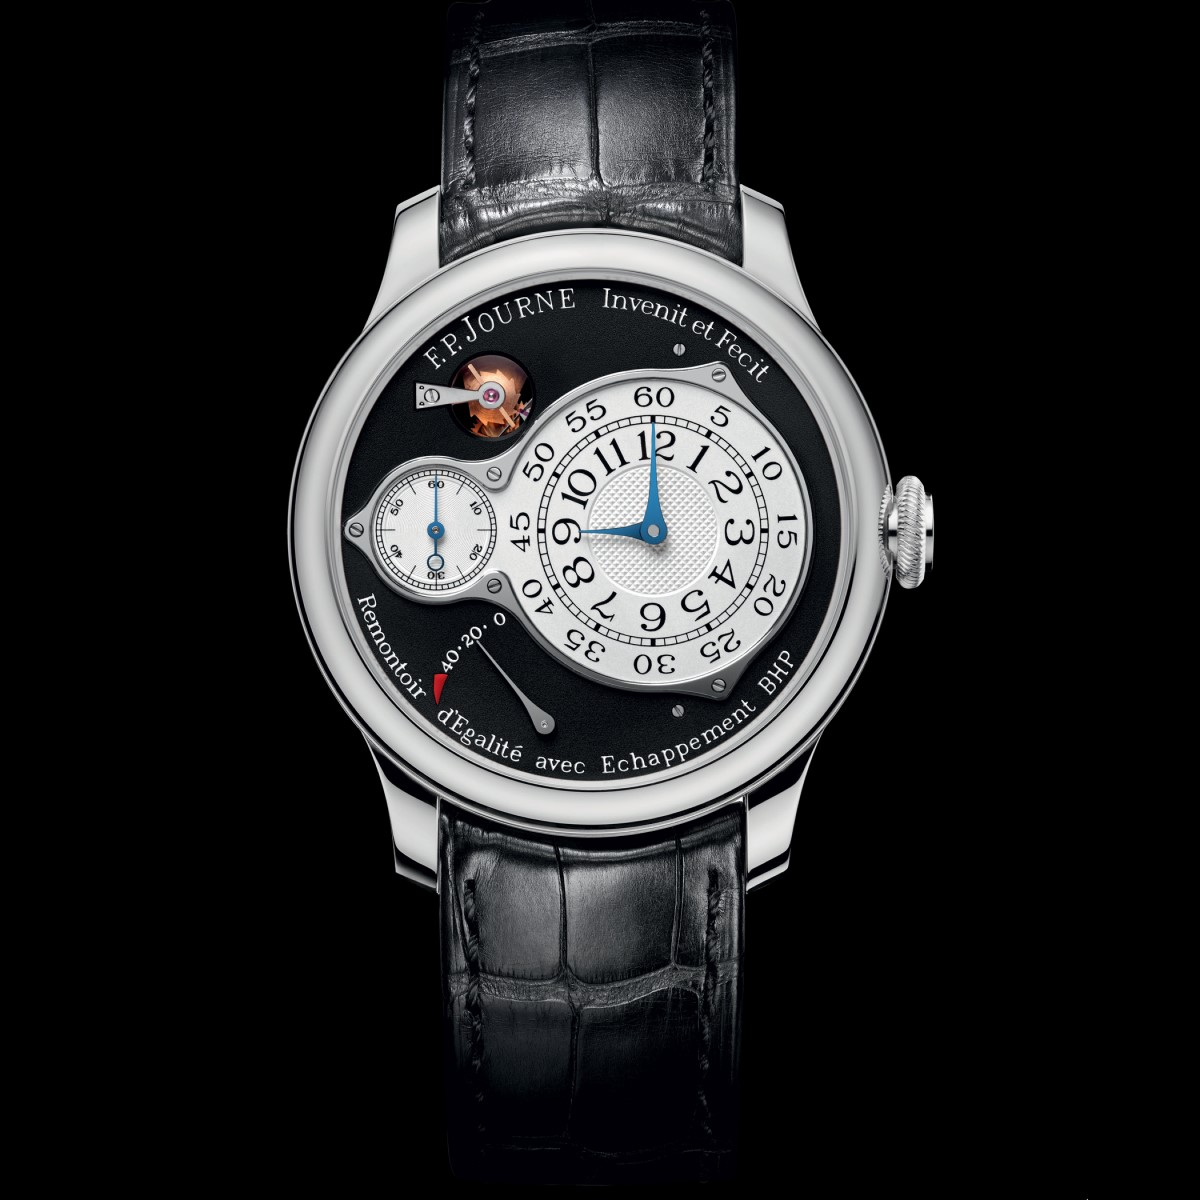 f.p.journe chronometre optimum black label boutique edition